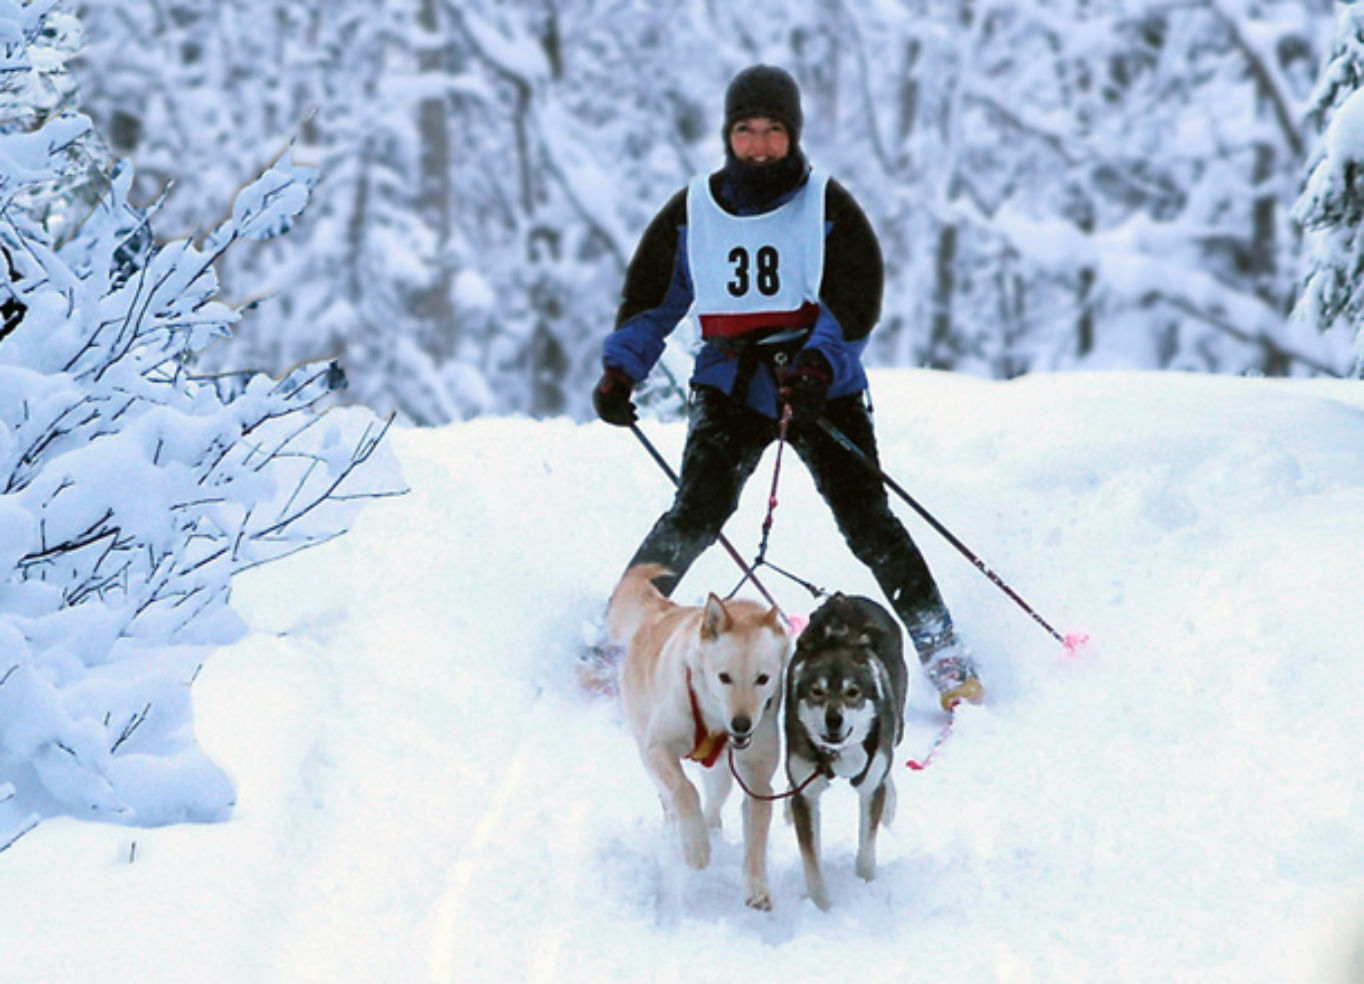 5 Best Places For Winter Sports Budget Travel